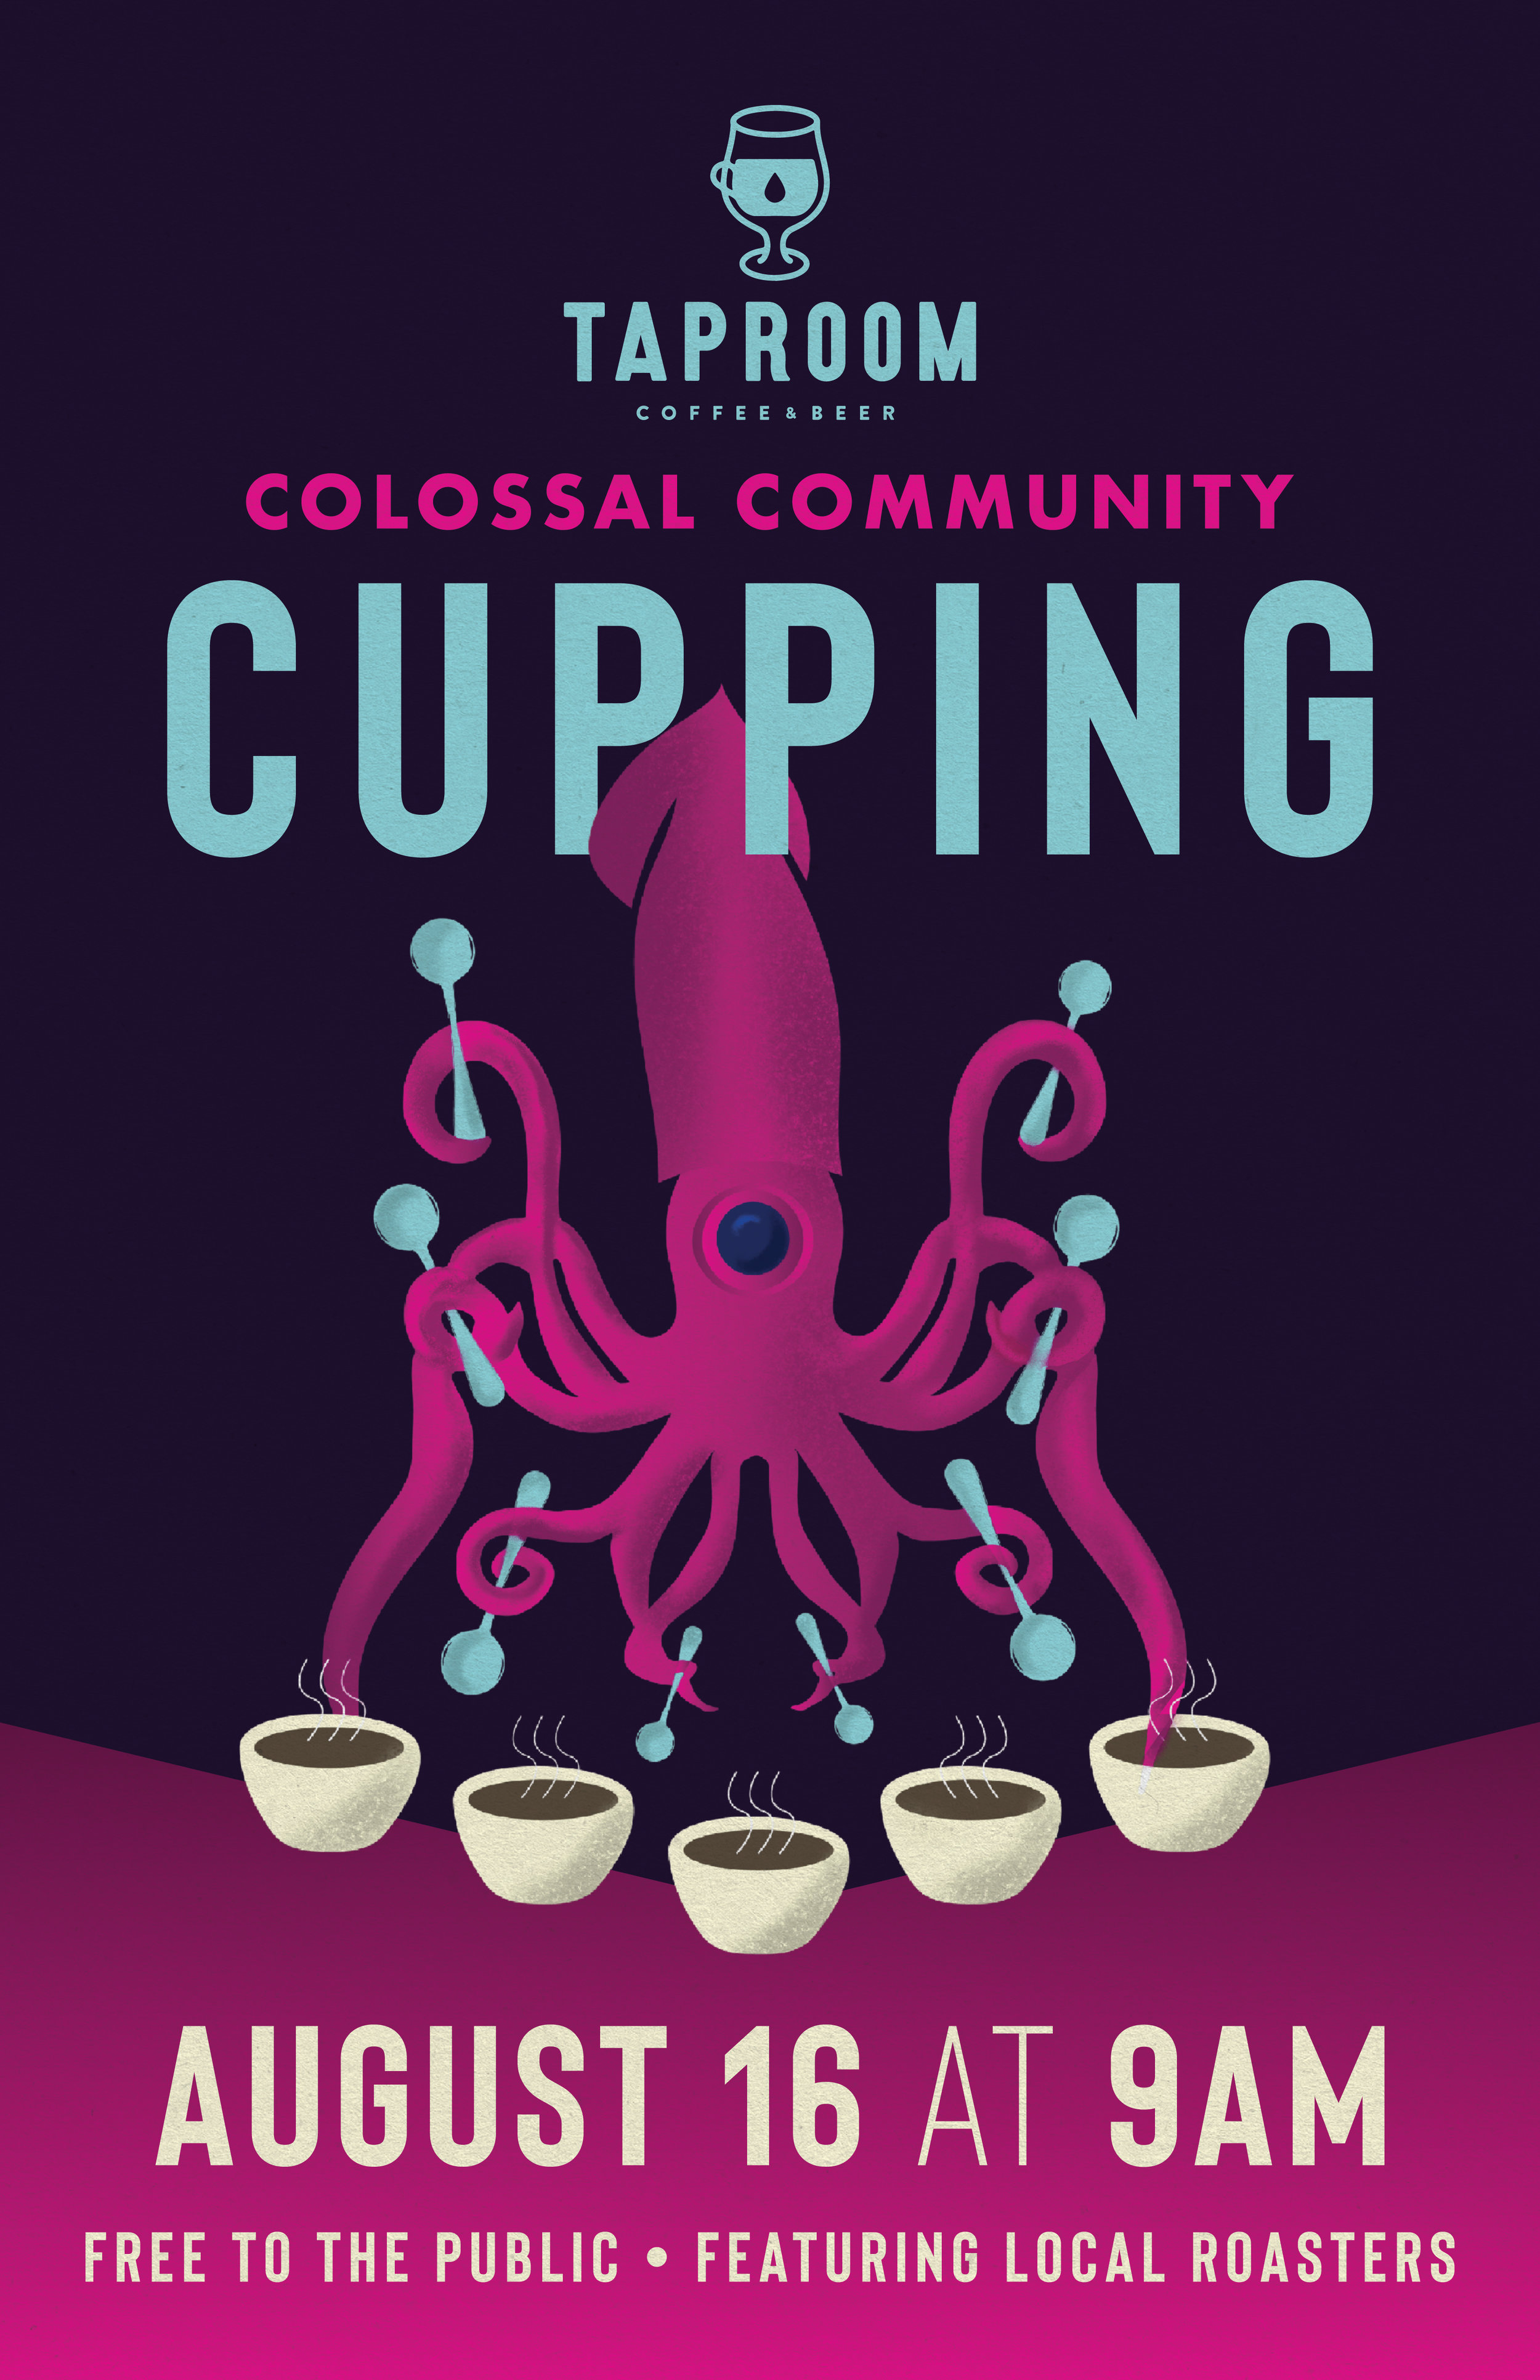 EM_Taproom_Colossal Community Cupping_11x17-01.jpg